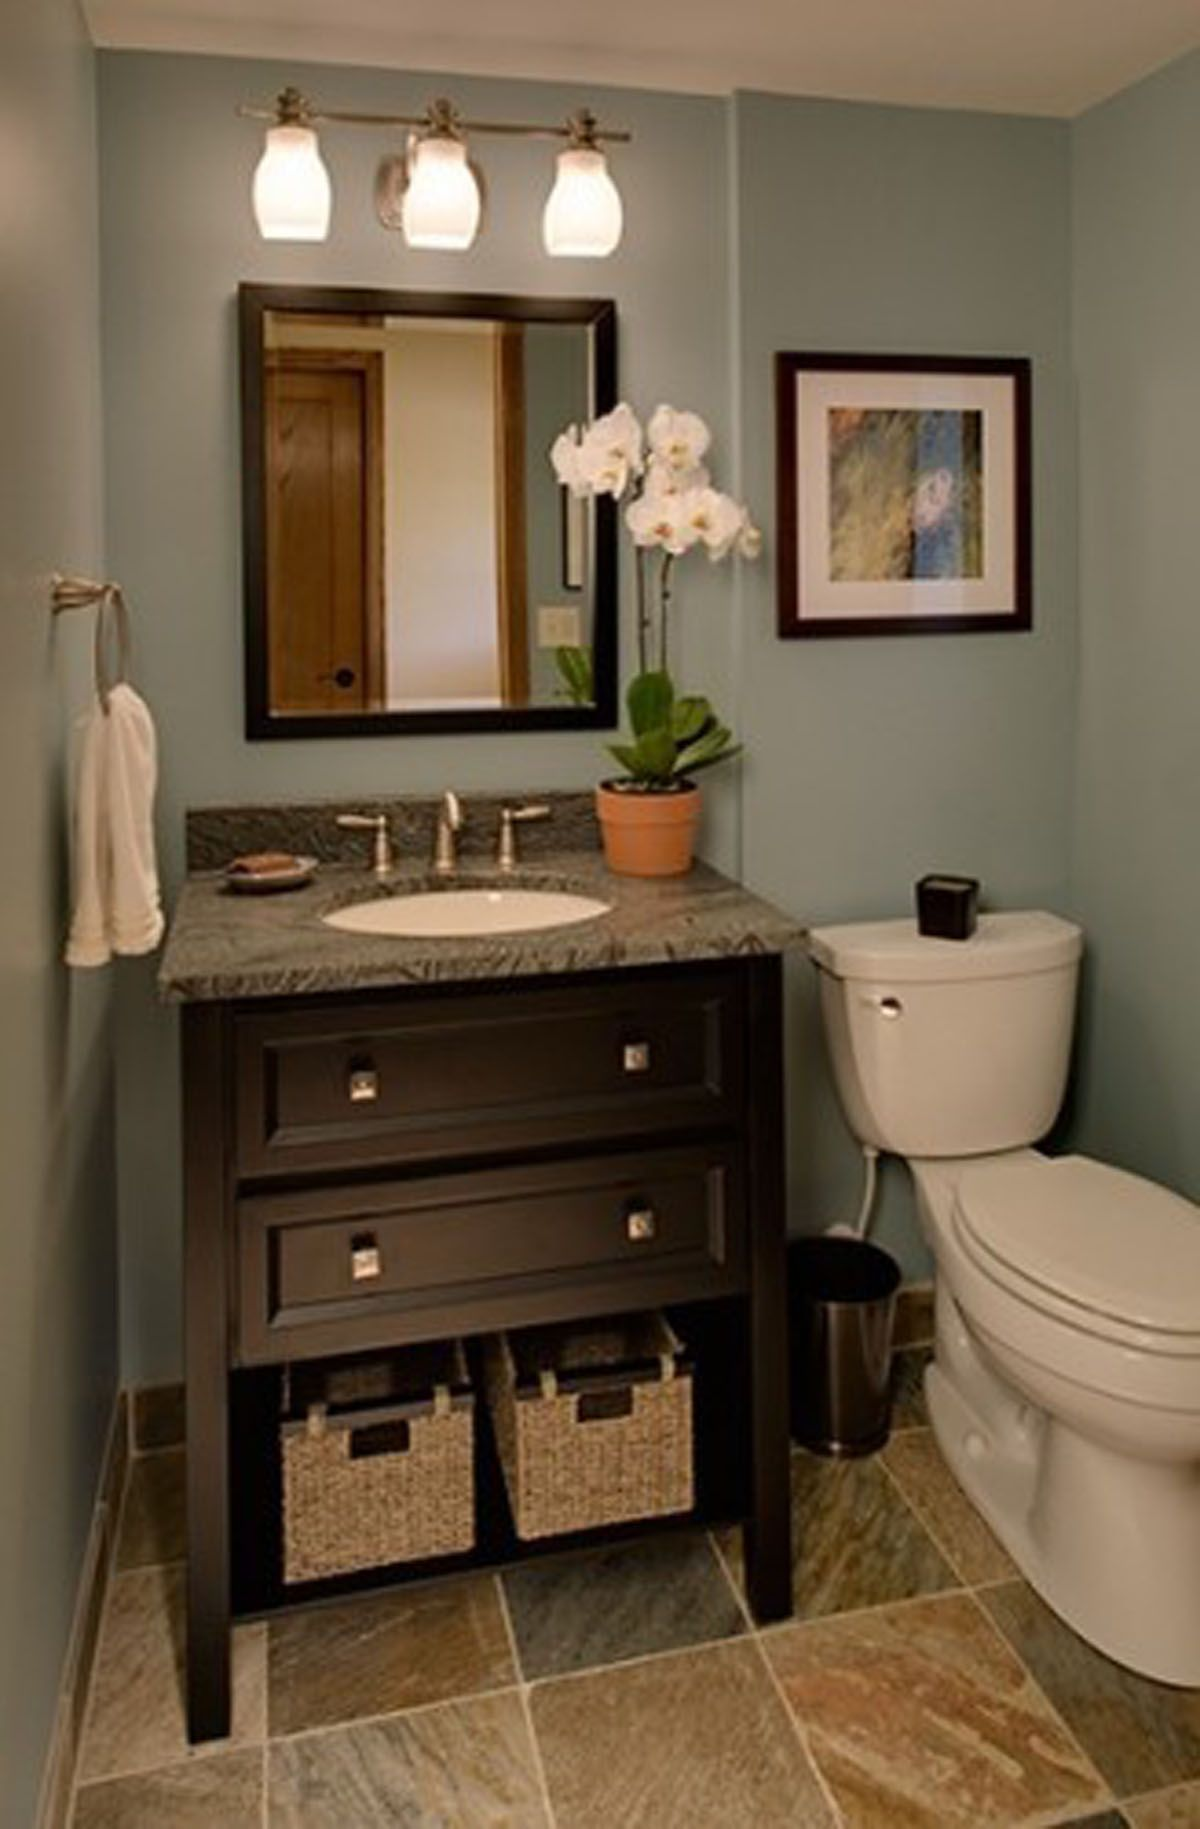 Half Bathroom Ideas half bathroom decorating ideas | design ideas & decors | bathrooms